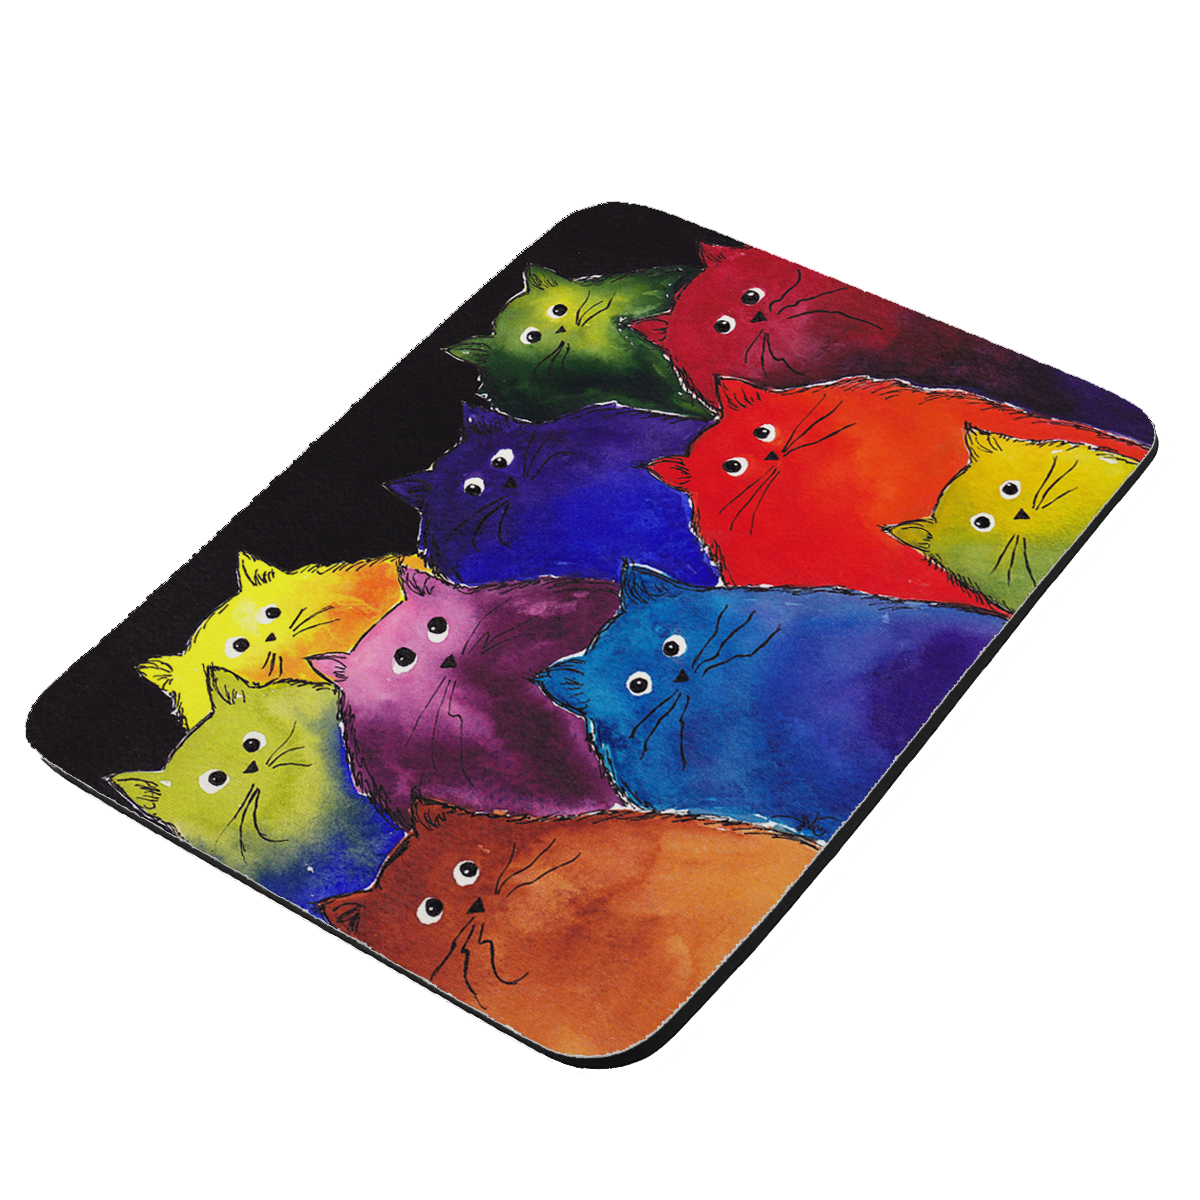 Very Colorful Two-Toned Silly Maine Coon Kitties Black Background  Art by Denise Every - KuzmarK Mousepad / Hot Pad / Trivet